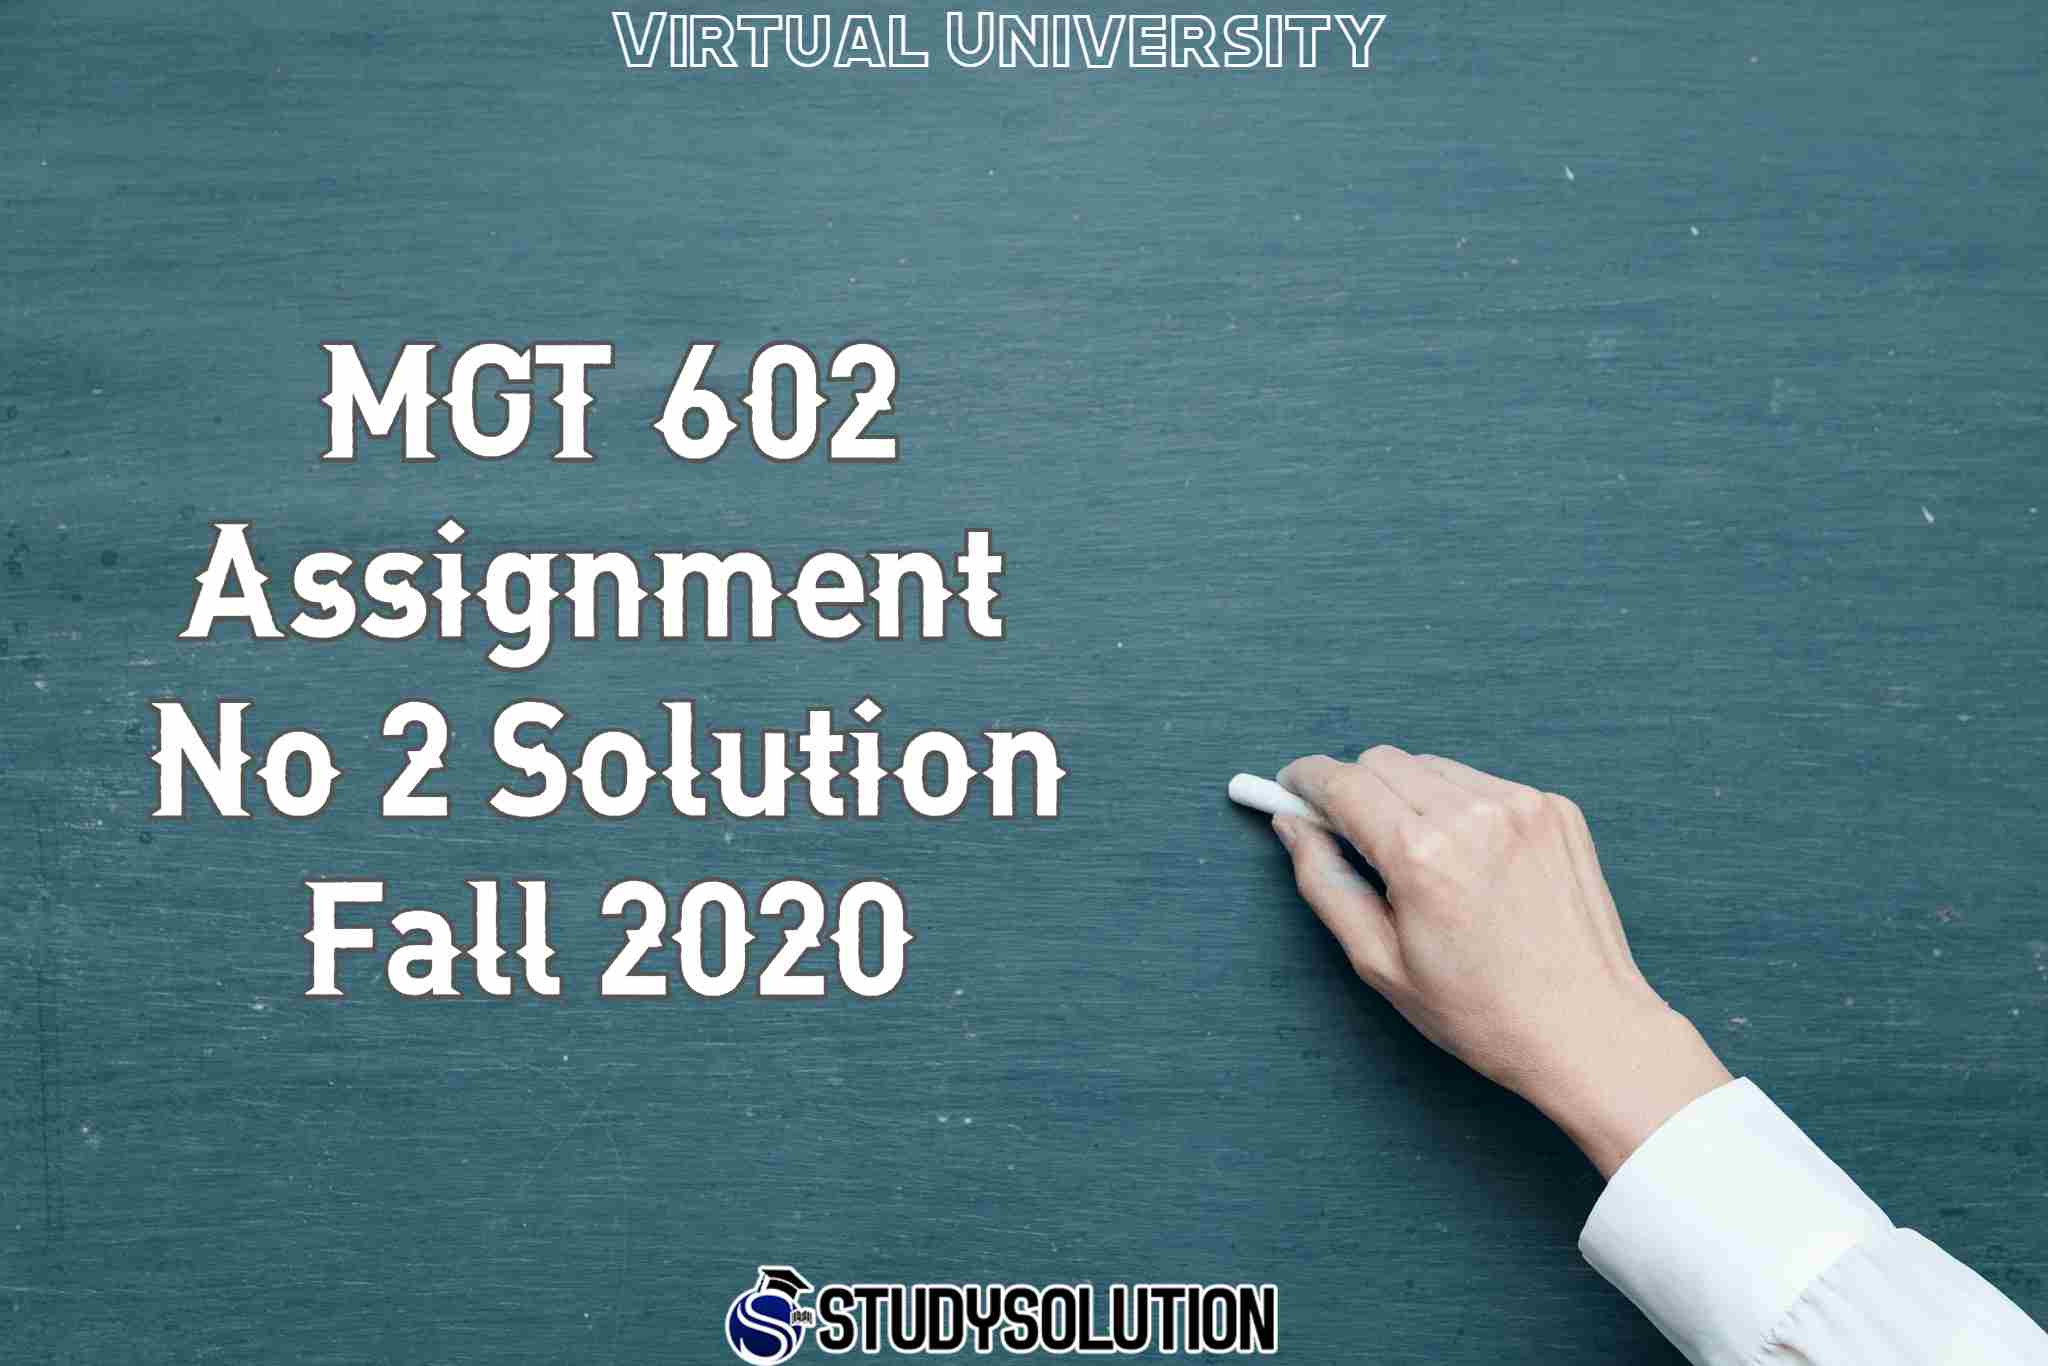 MGT 602 Assignment No 2 Solution Fall 2020